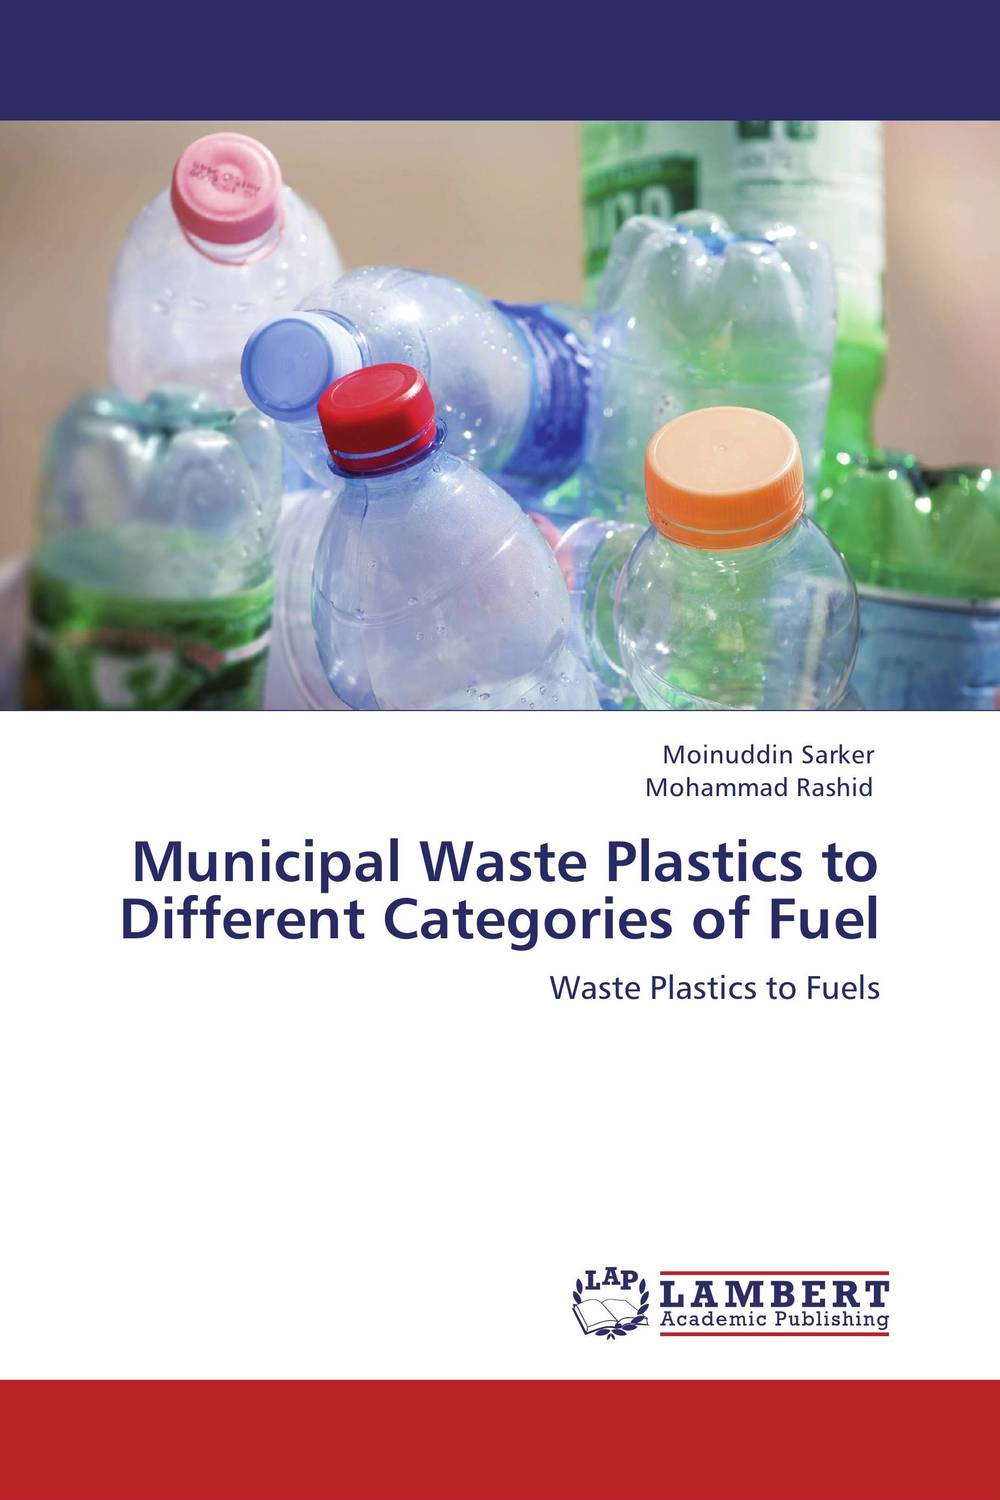 Municipal Waste Plastics to Different Categories of Fuel